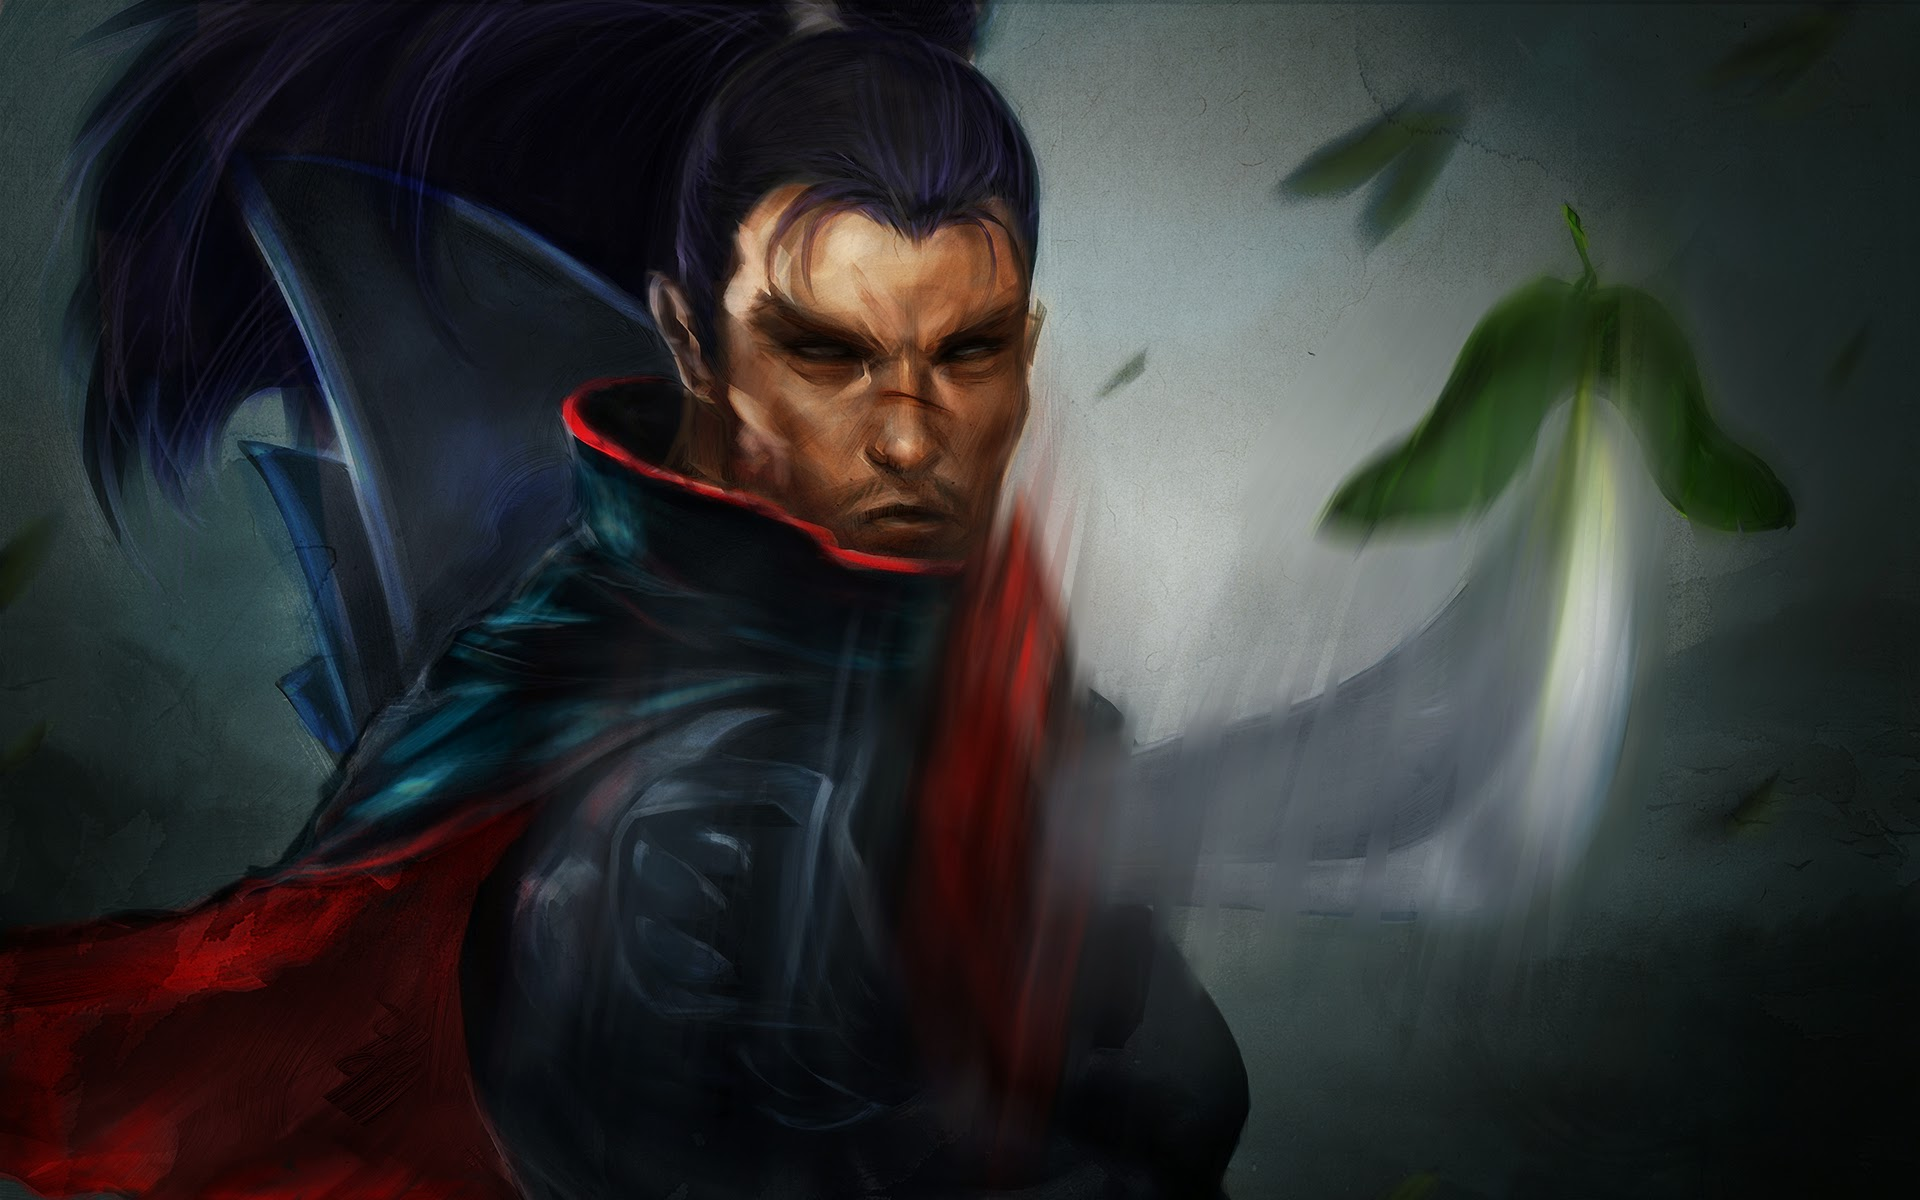 yasuo league of legends lol champion wallpaper hd 1920x1200 widescreen    Yasuo League Of Legends